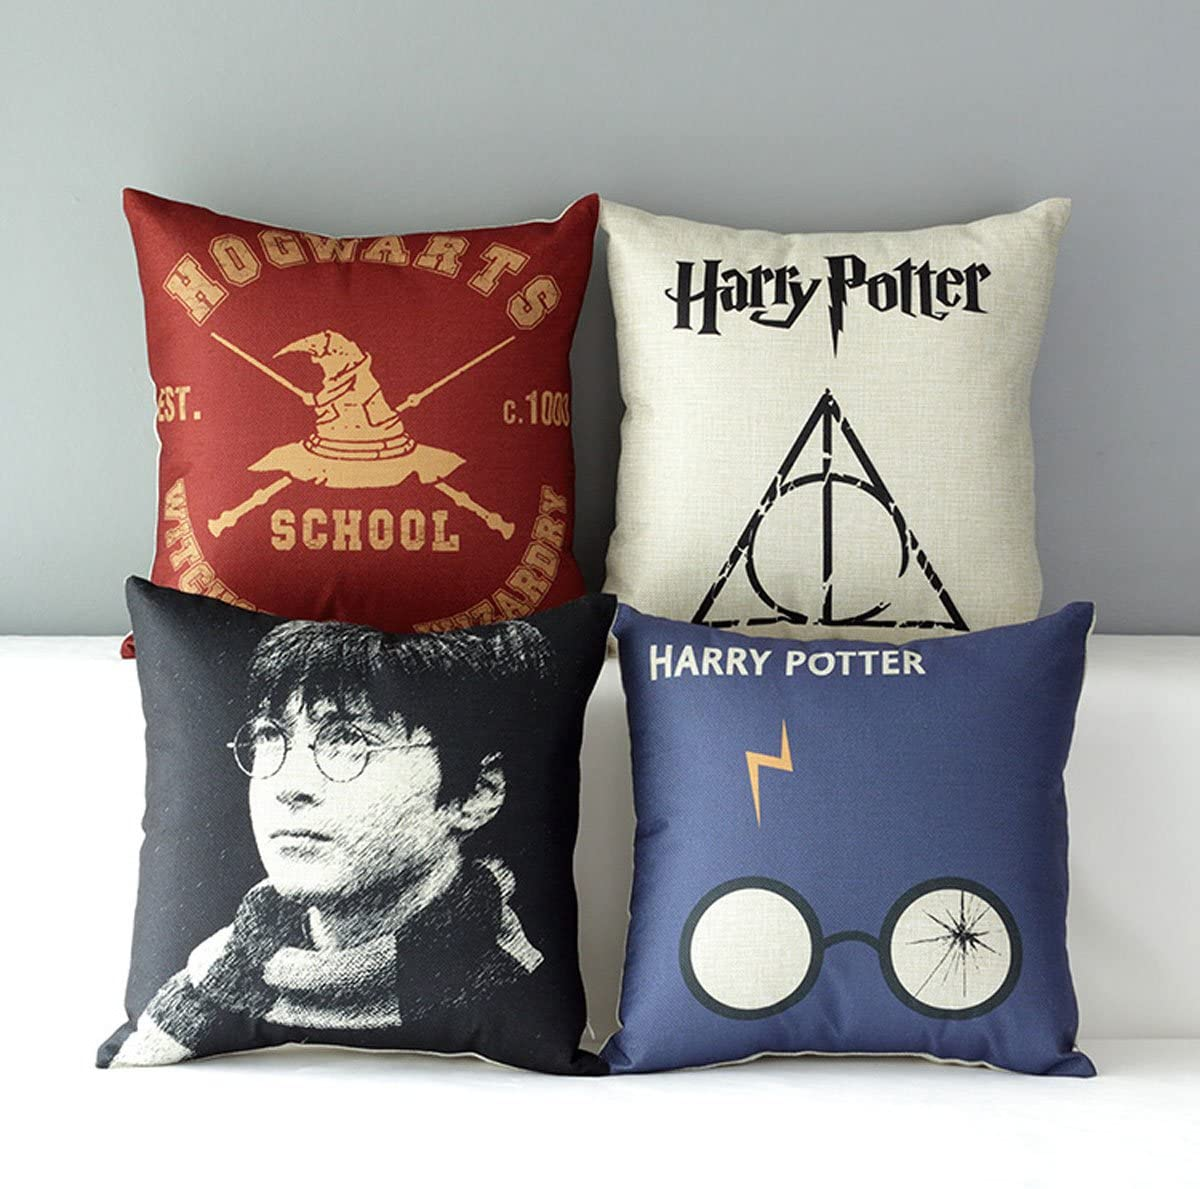 "TavasDecor 17"" Hogwarts Harry Potter Decorative Home Sofa Throw Pillow Case Cushion Cover - Bundle 4 Pieces One Set"